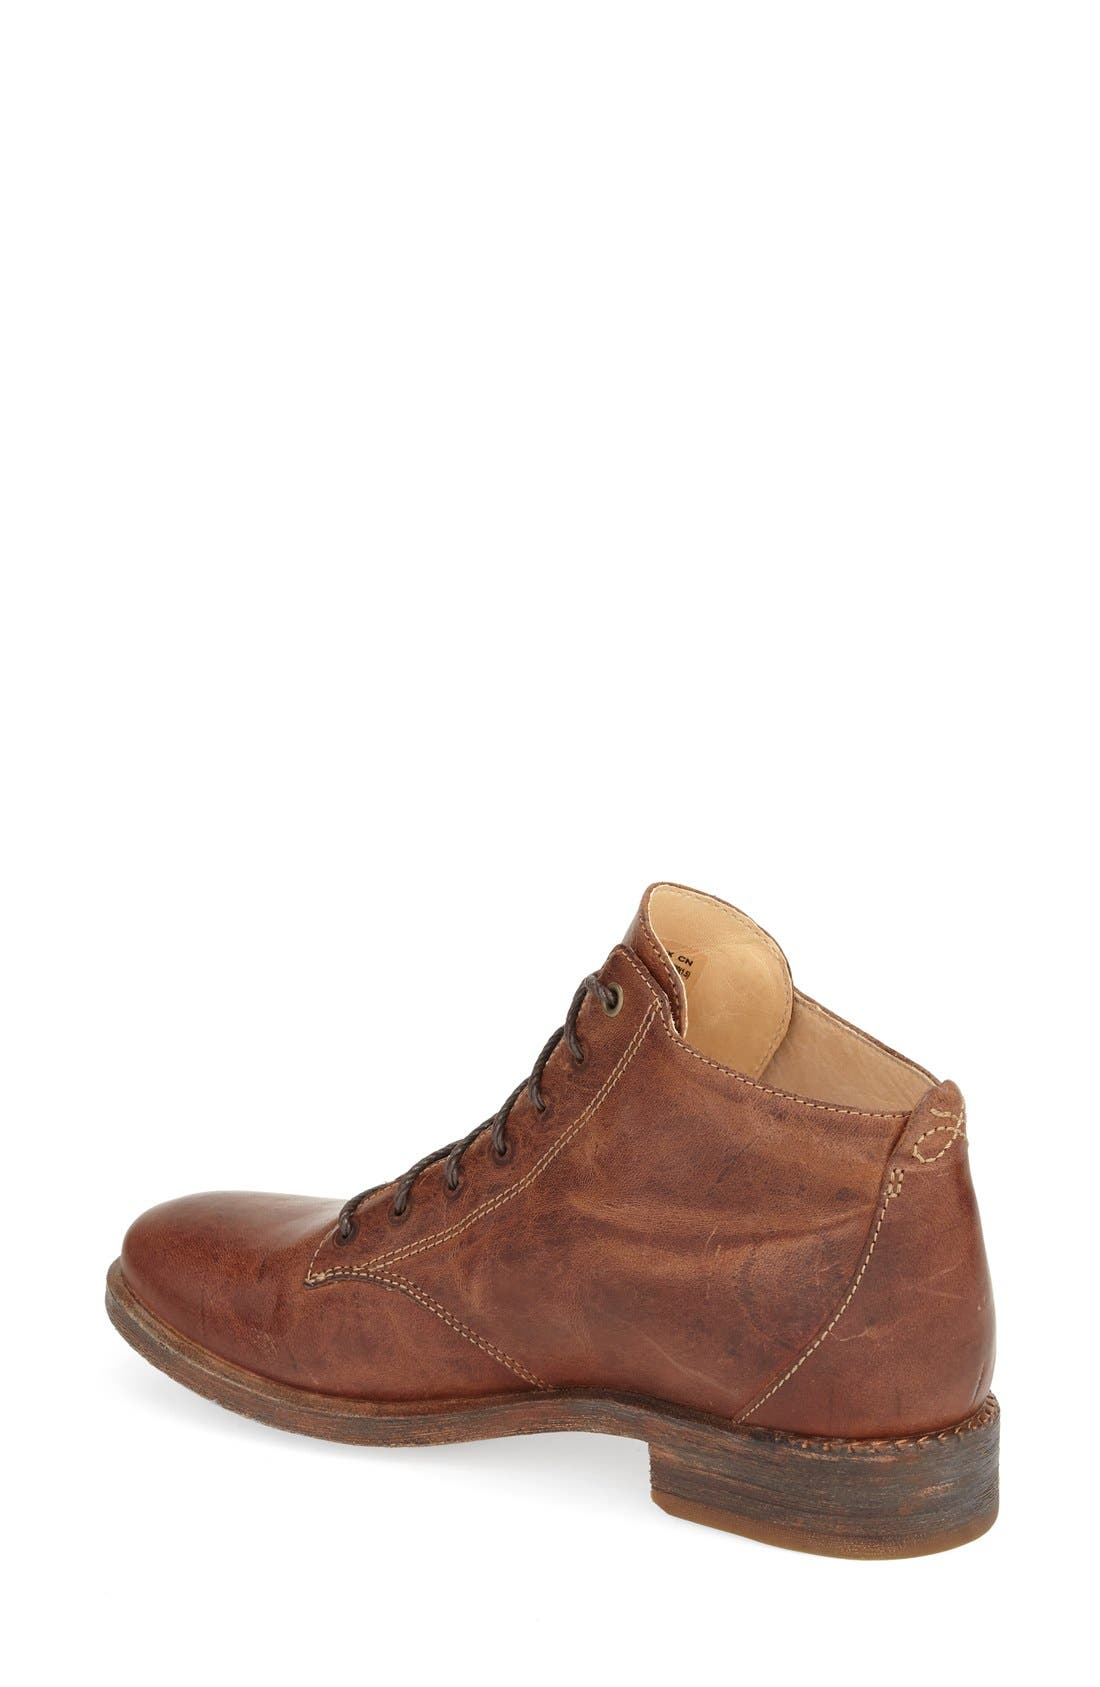 Alternate Image 2  - Timberland 'Lucille' Lace-Up Bootie (Women)